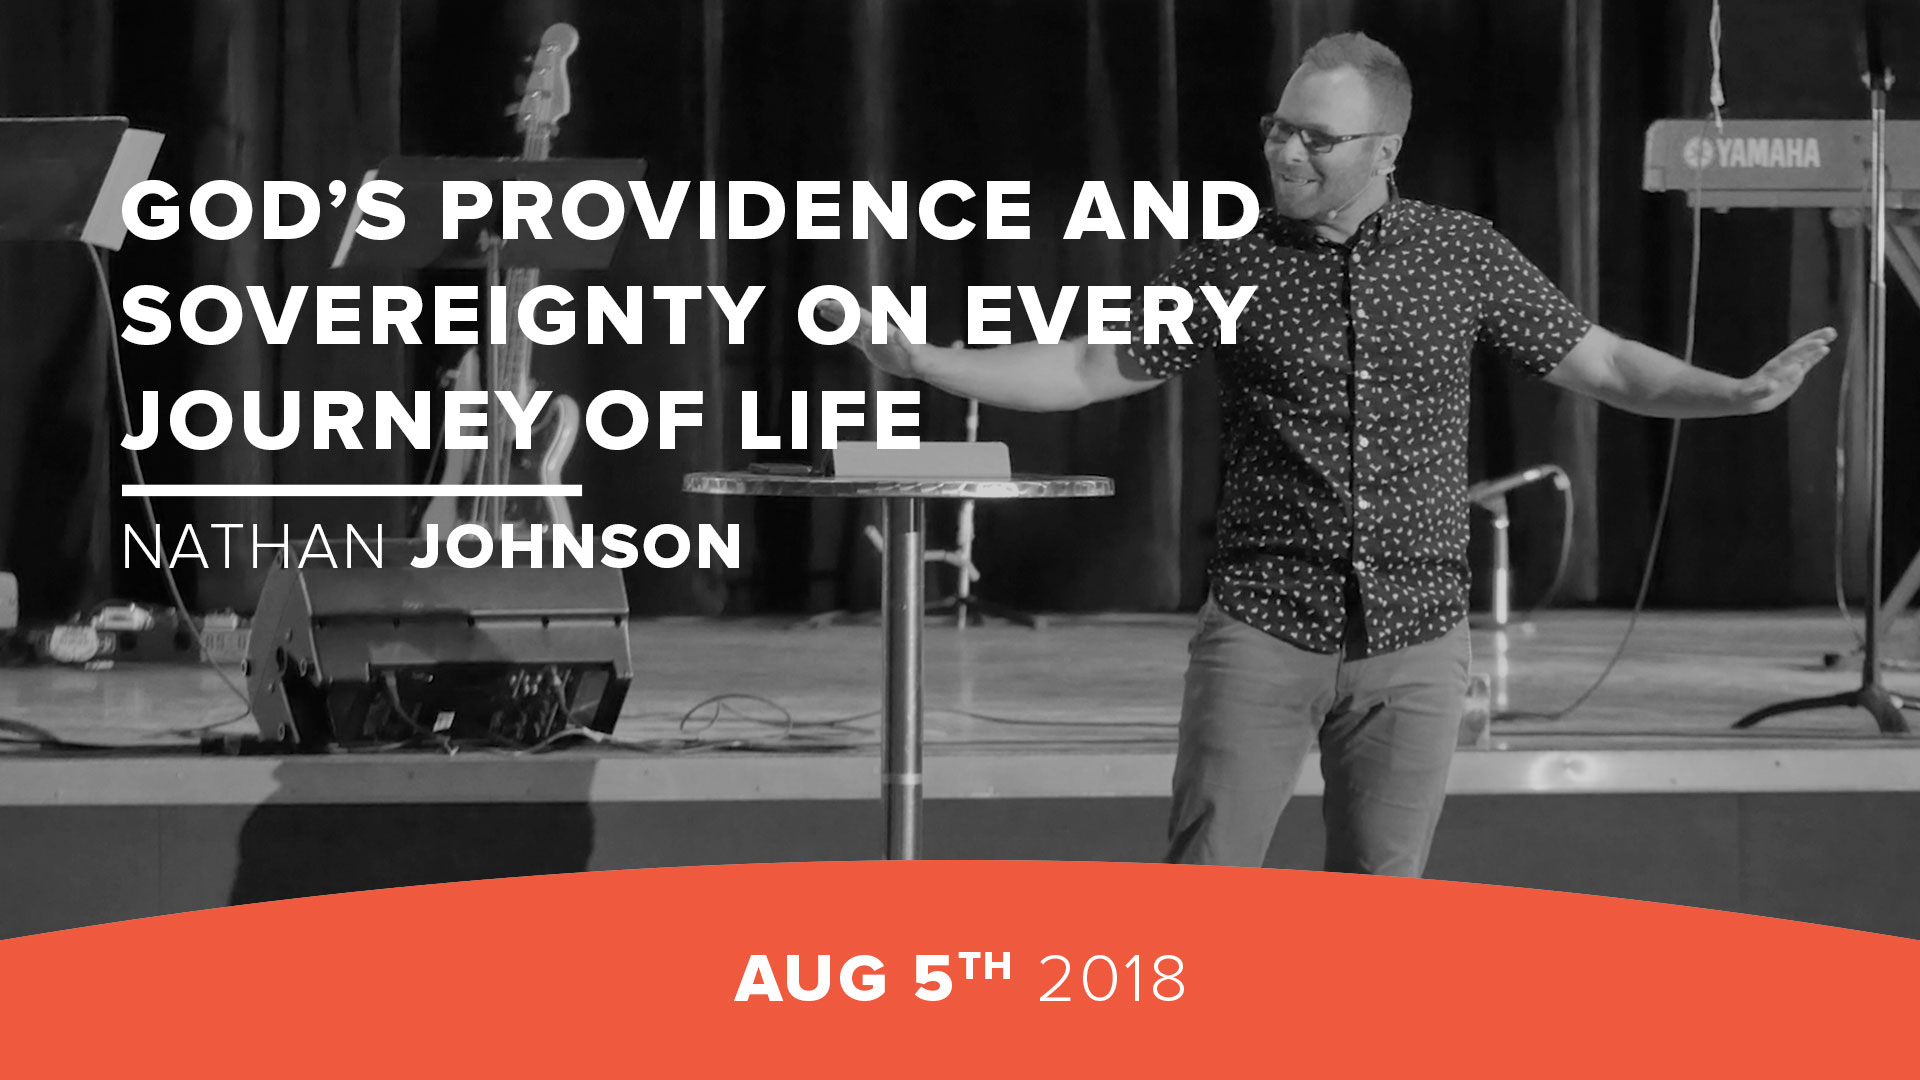 God's Providence and Sovereignty on Every Journey of Life